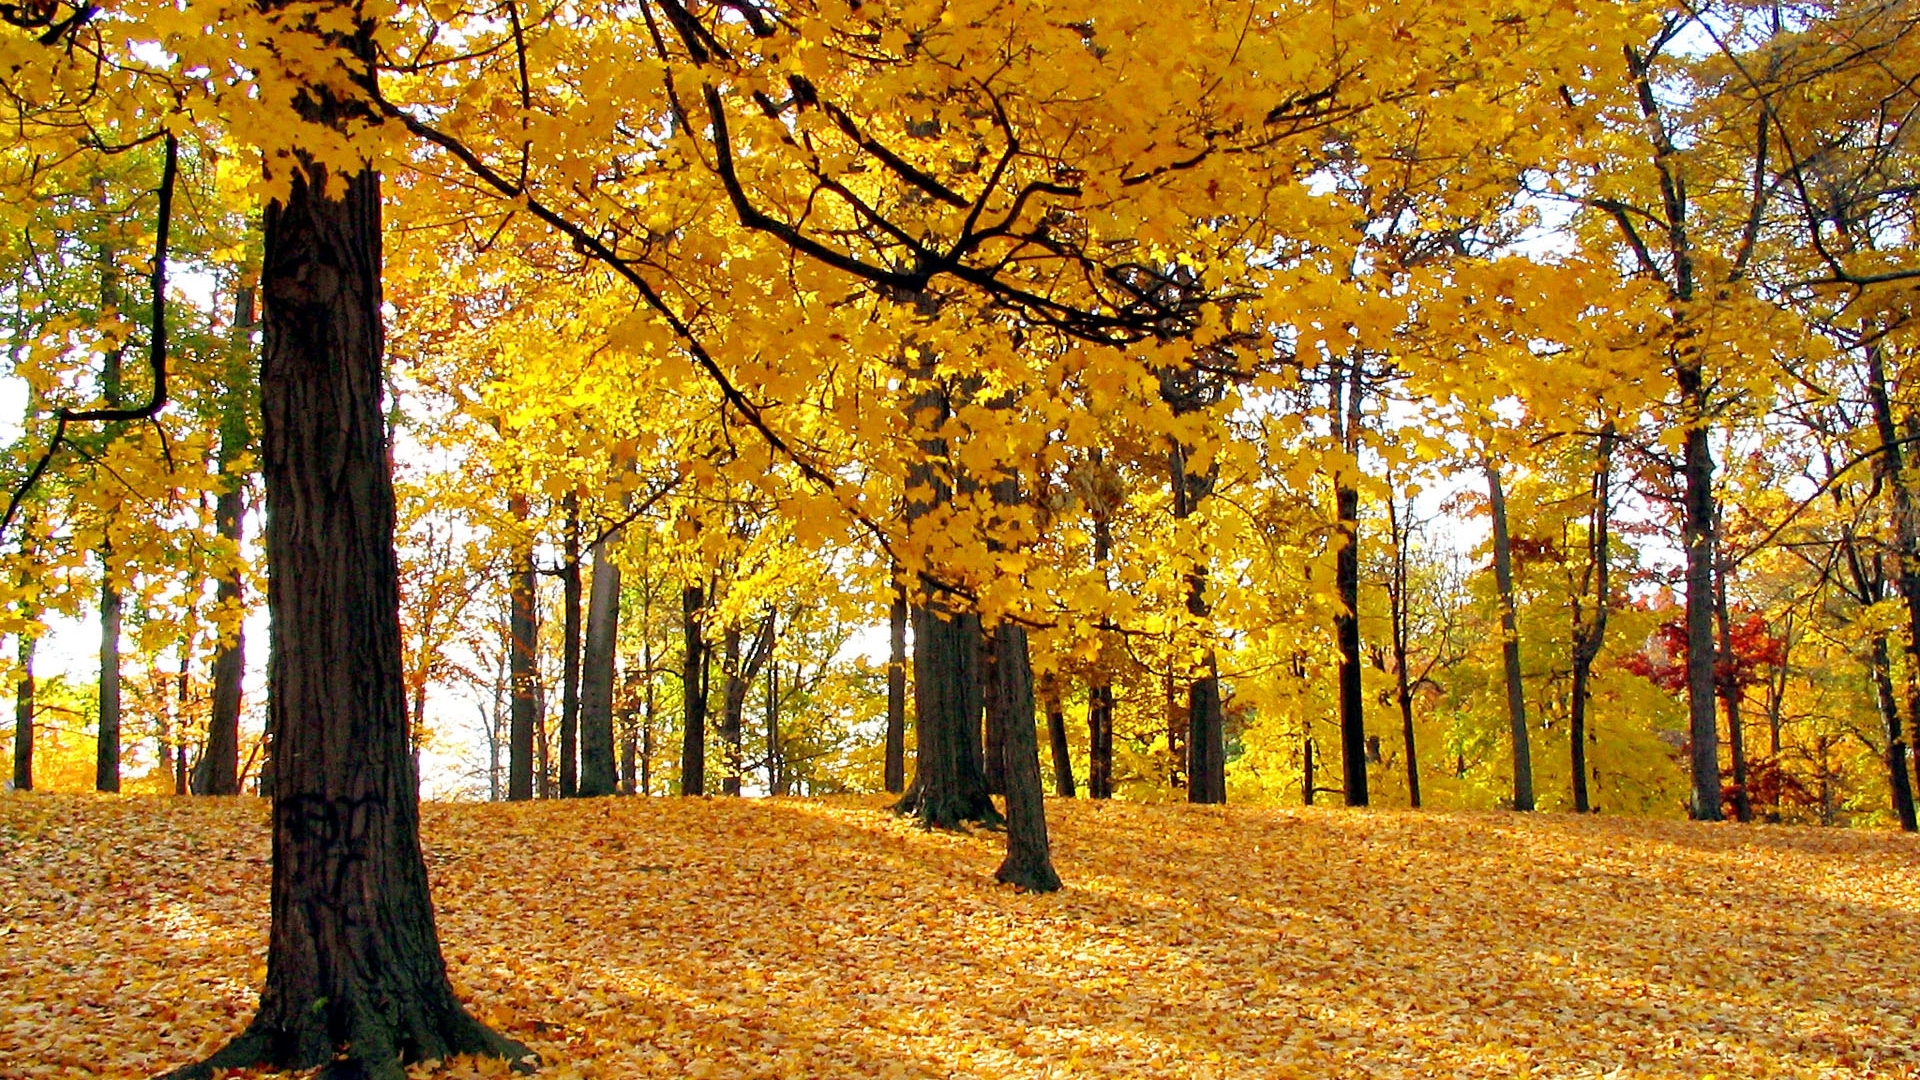 31359 download wallpaper Landscape, Trees, Autumn, Leaves screensavers and pictures for free